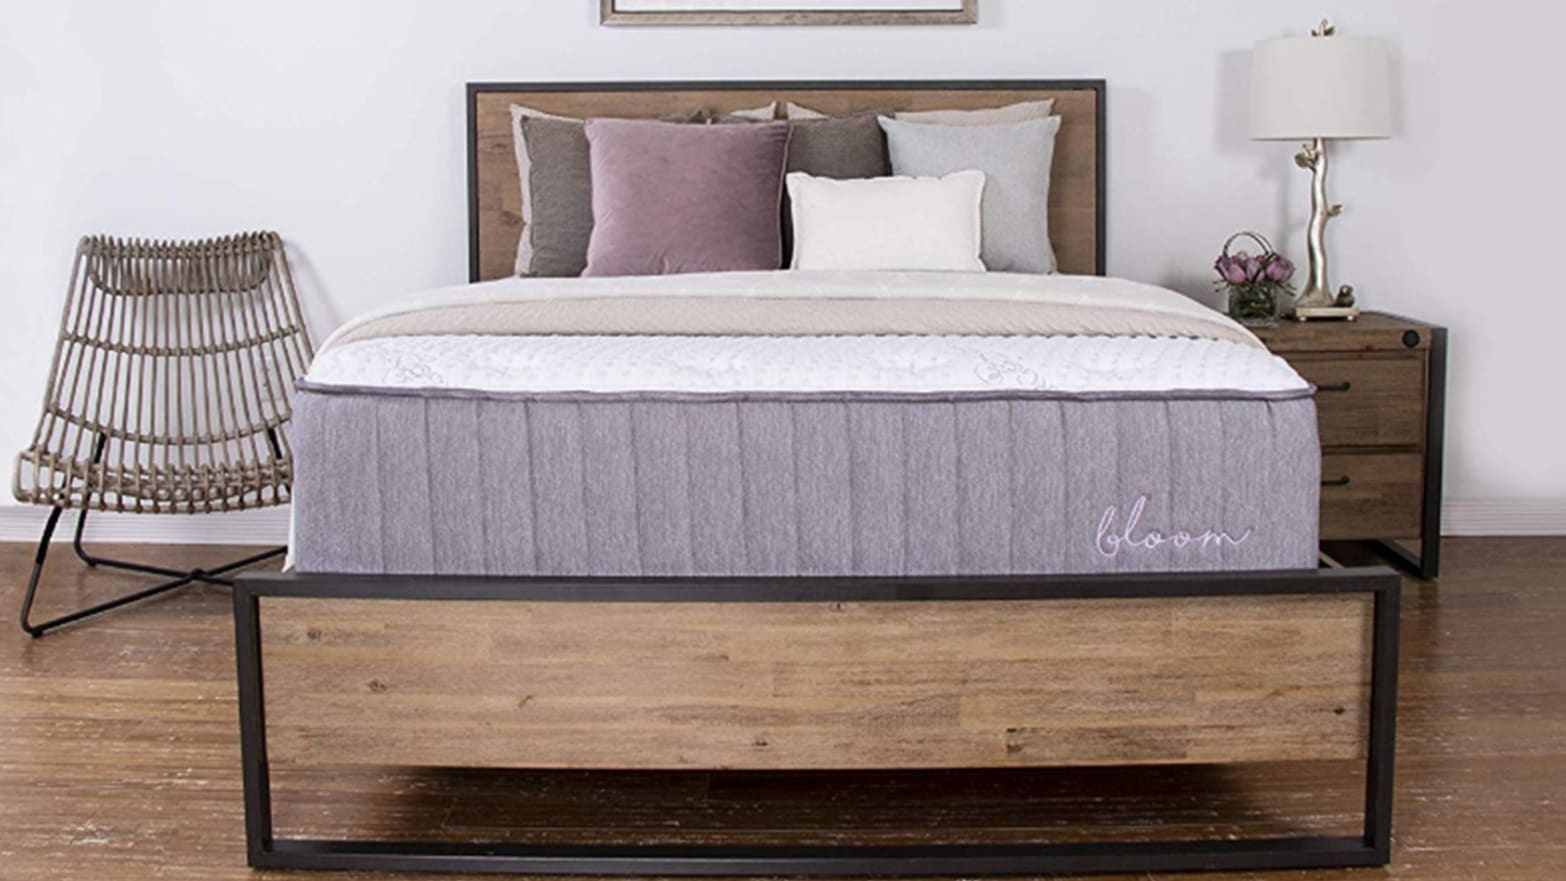 brooklyn bloom hybrid mattress review